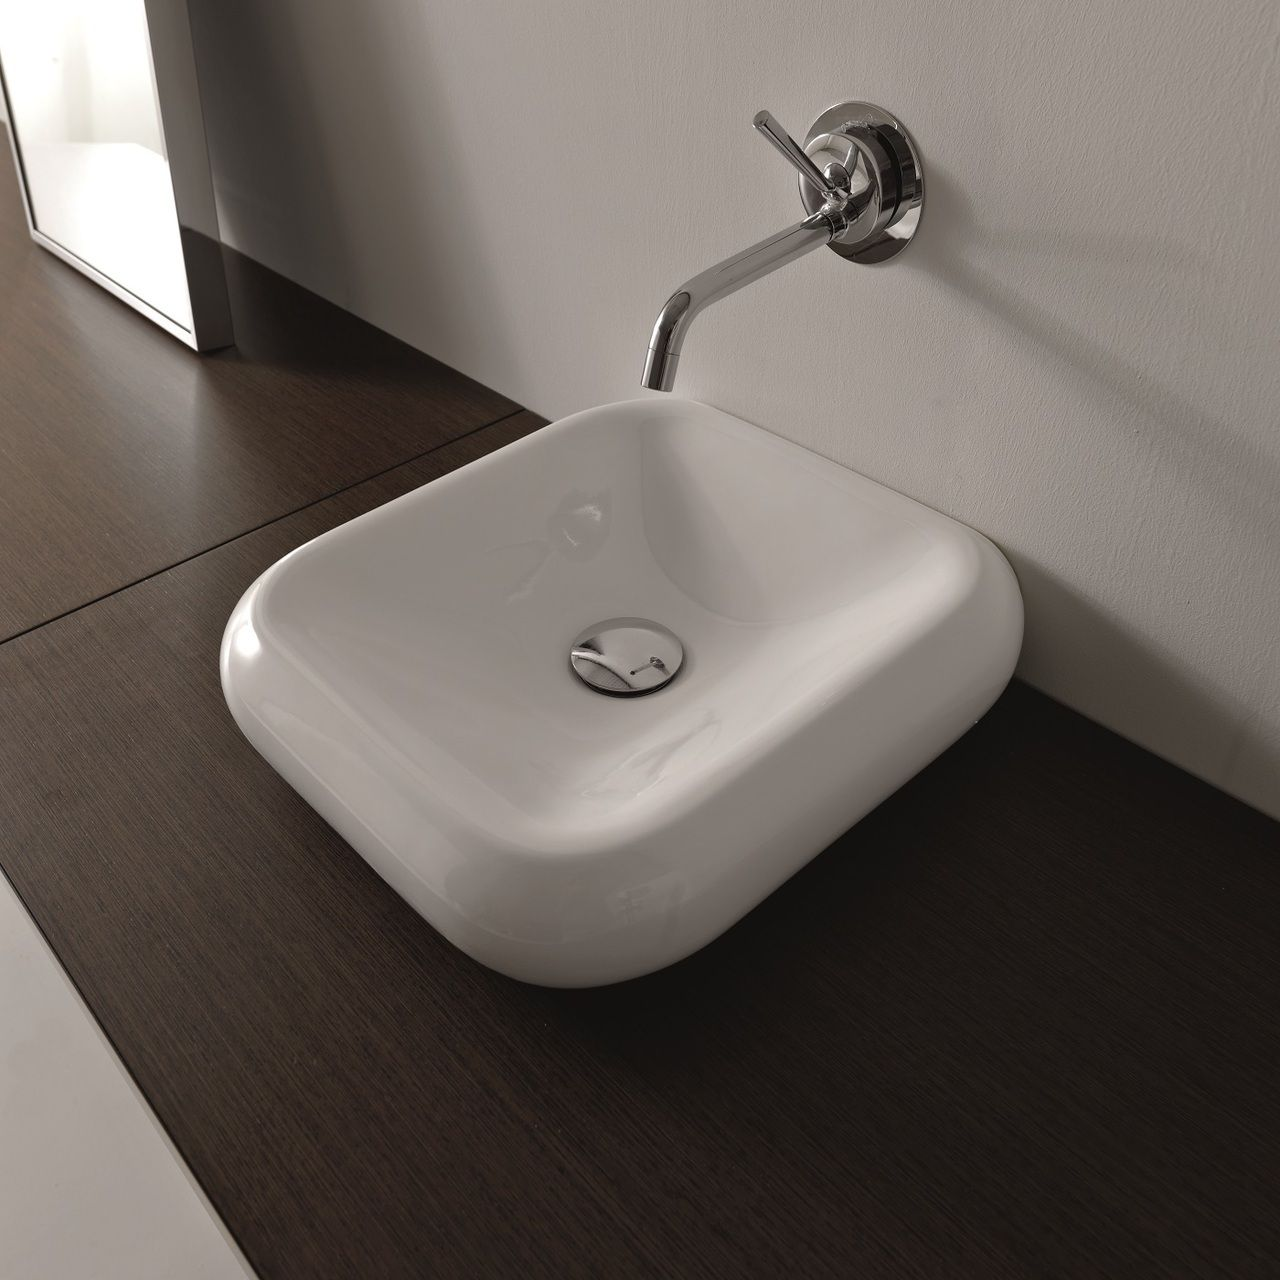 Importance of Space When Incorporating a Small Bathroom Sink - Cento 3542